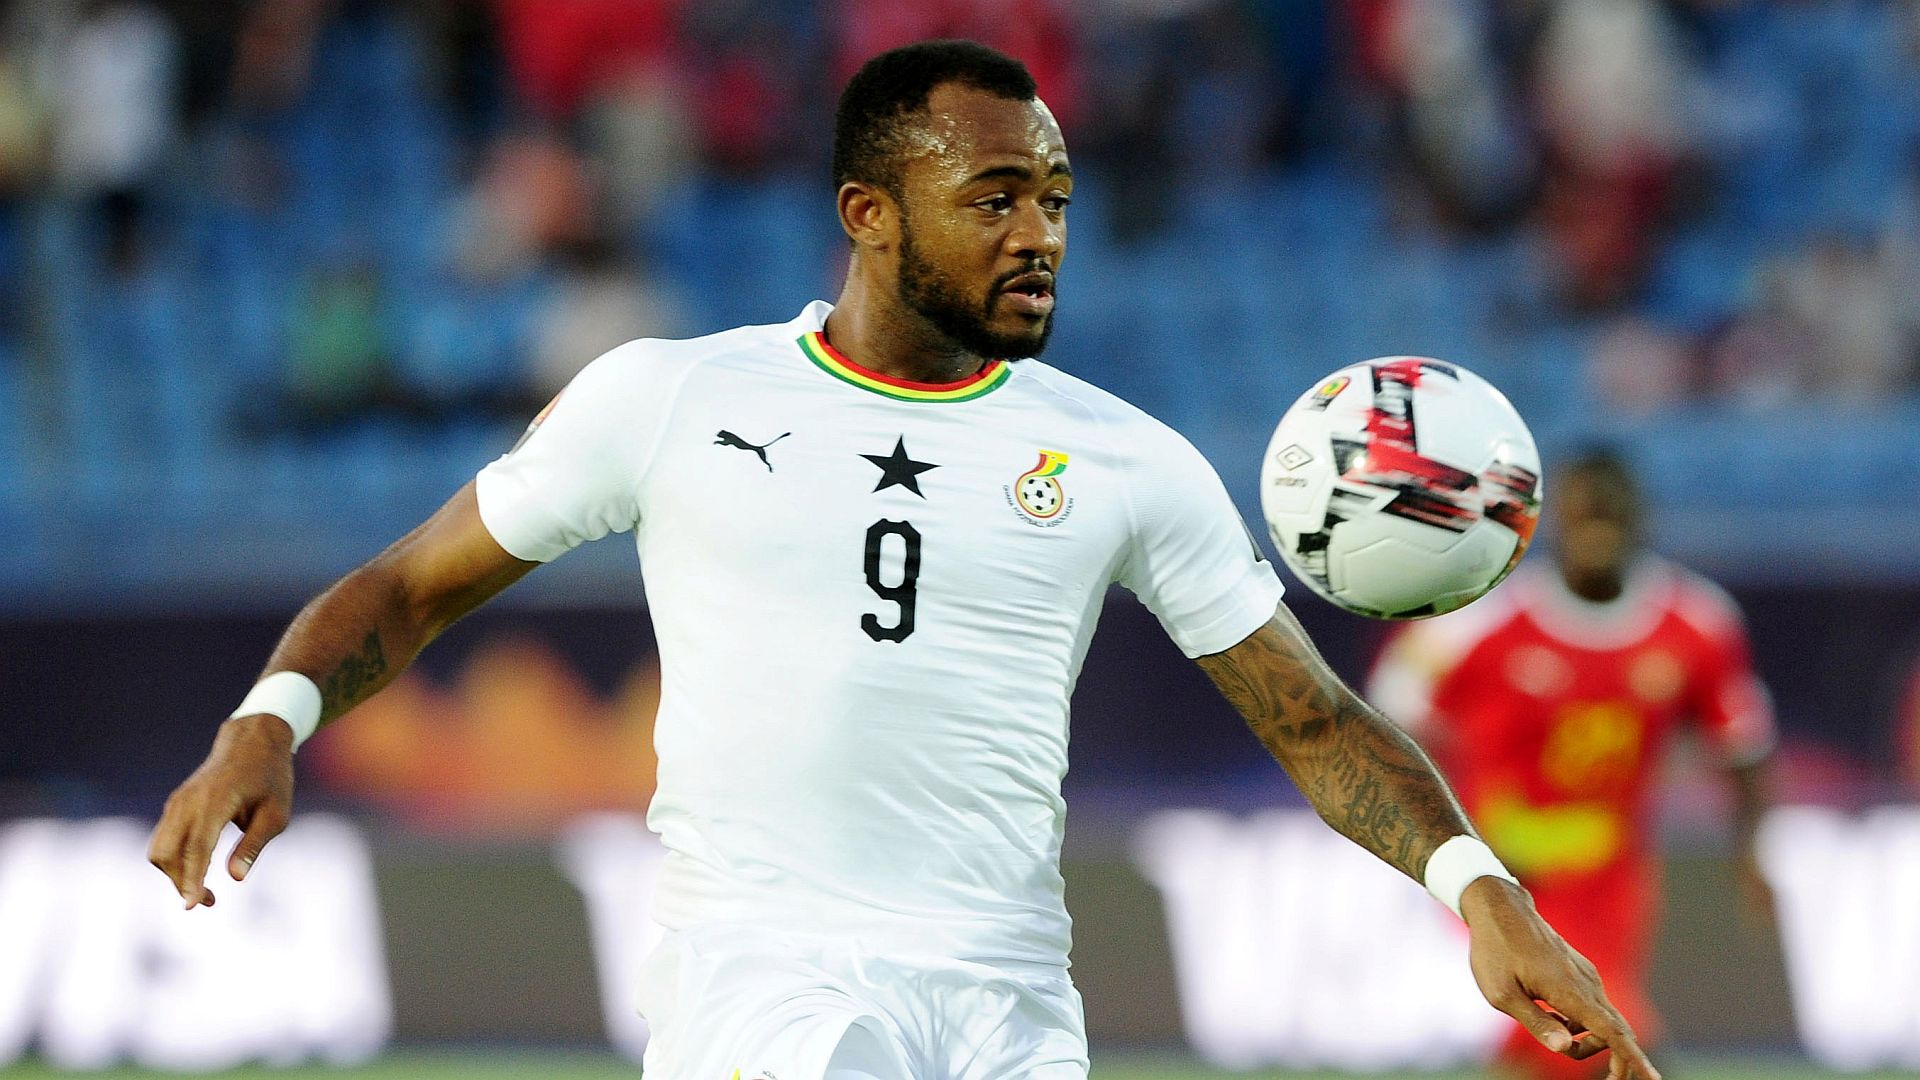 Jordan Ayew: Former Netherlands midfielder George Boateng calls for patience with Crystal Palace striker